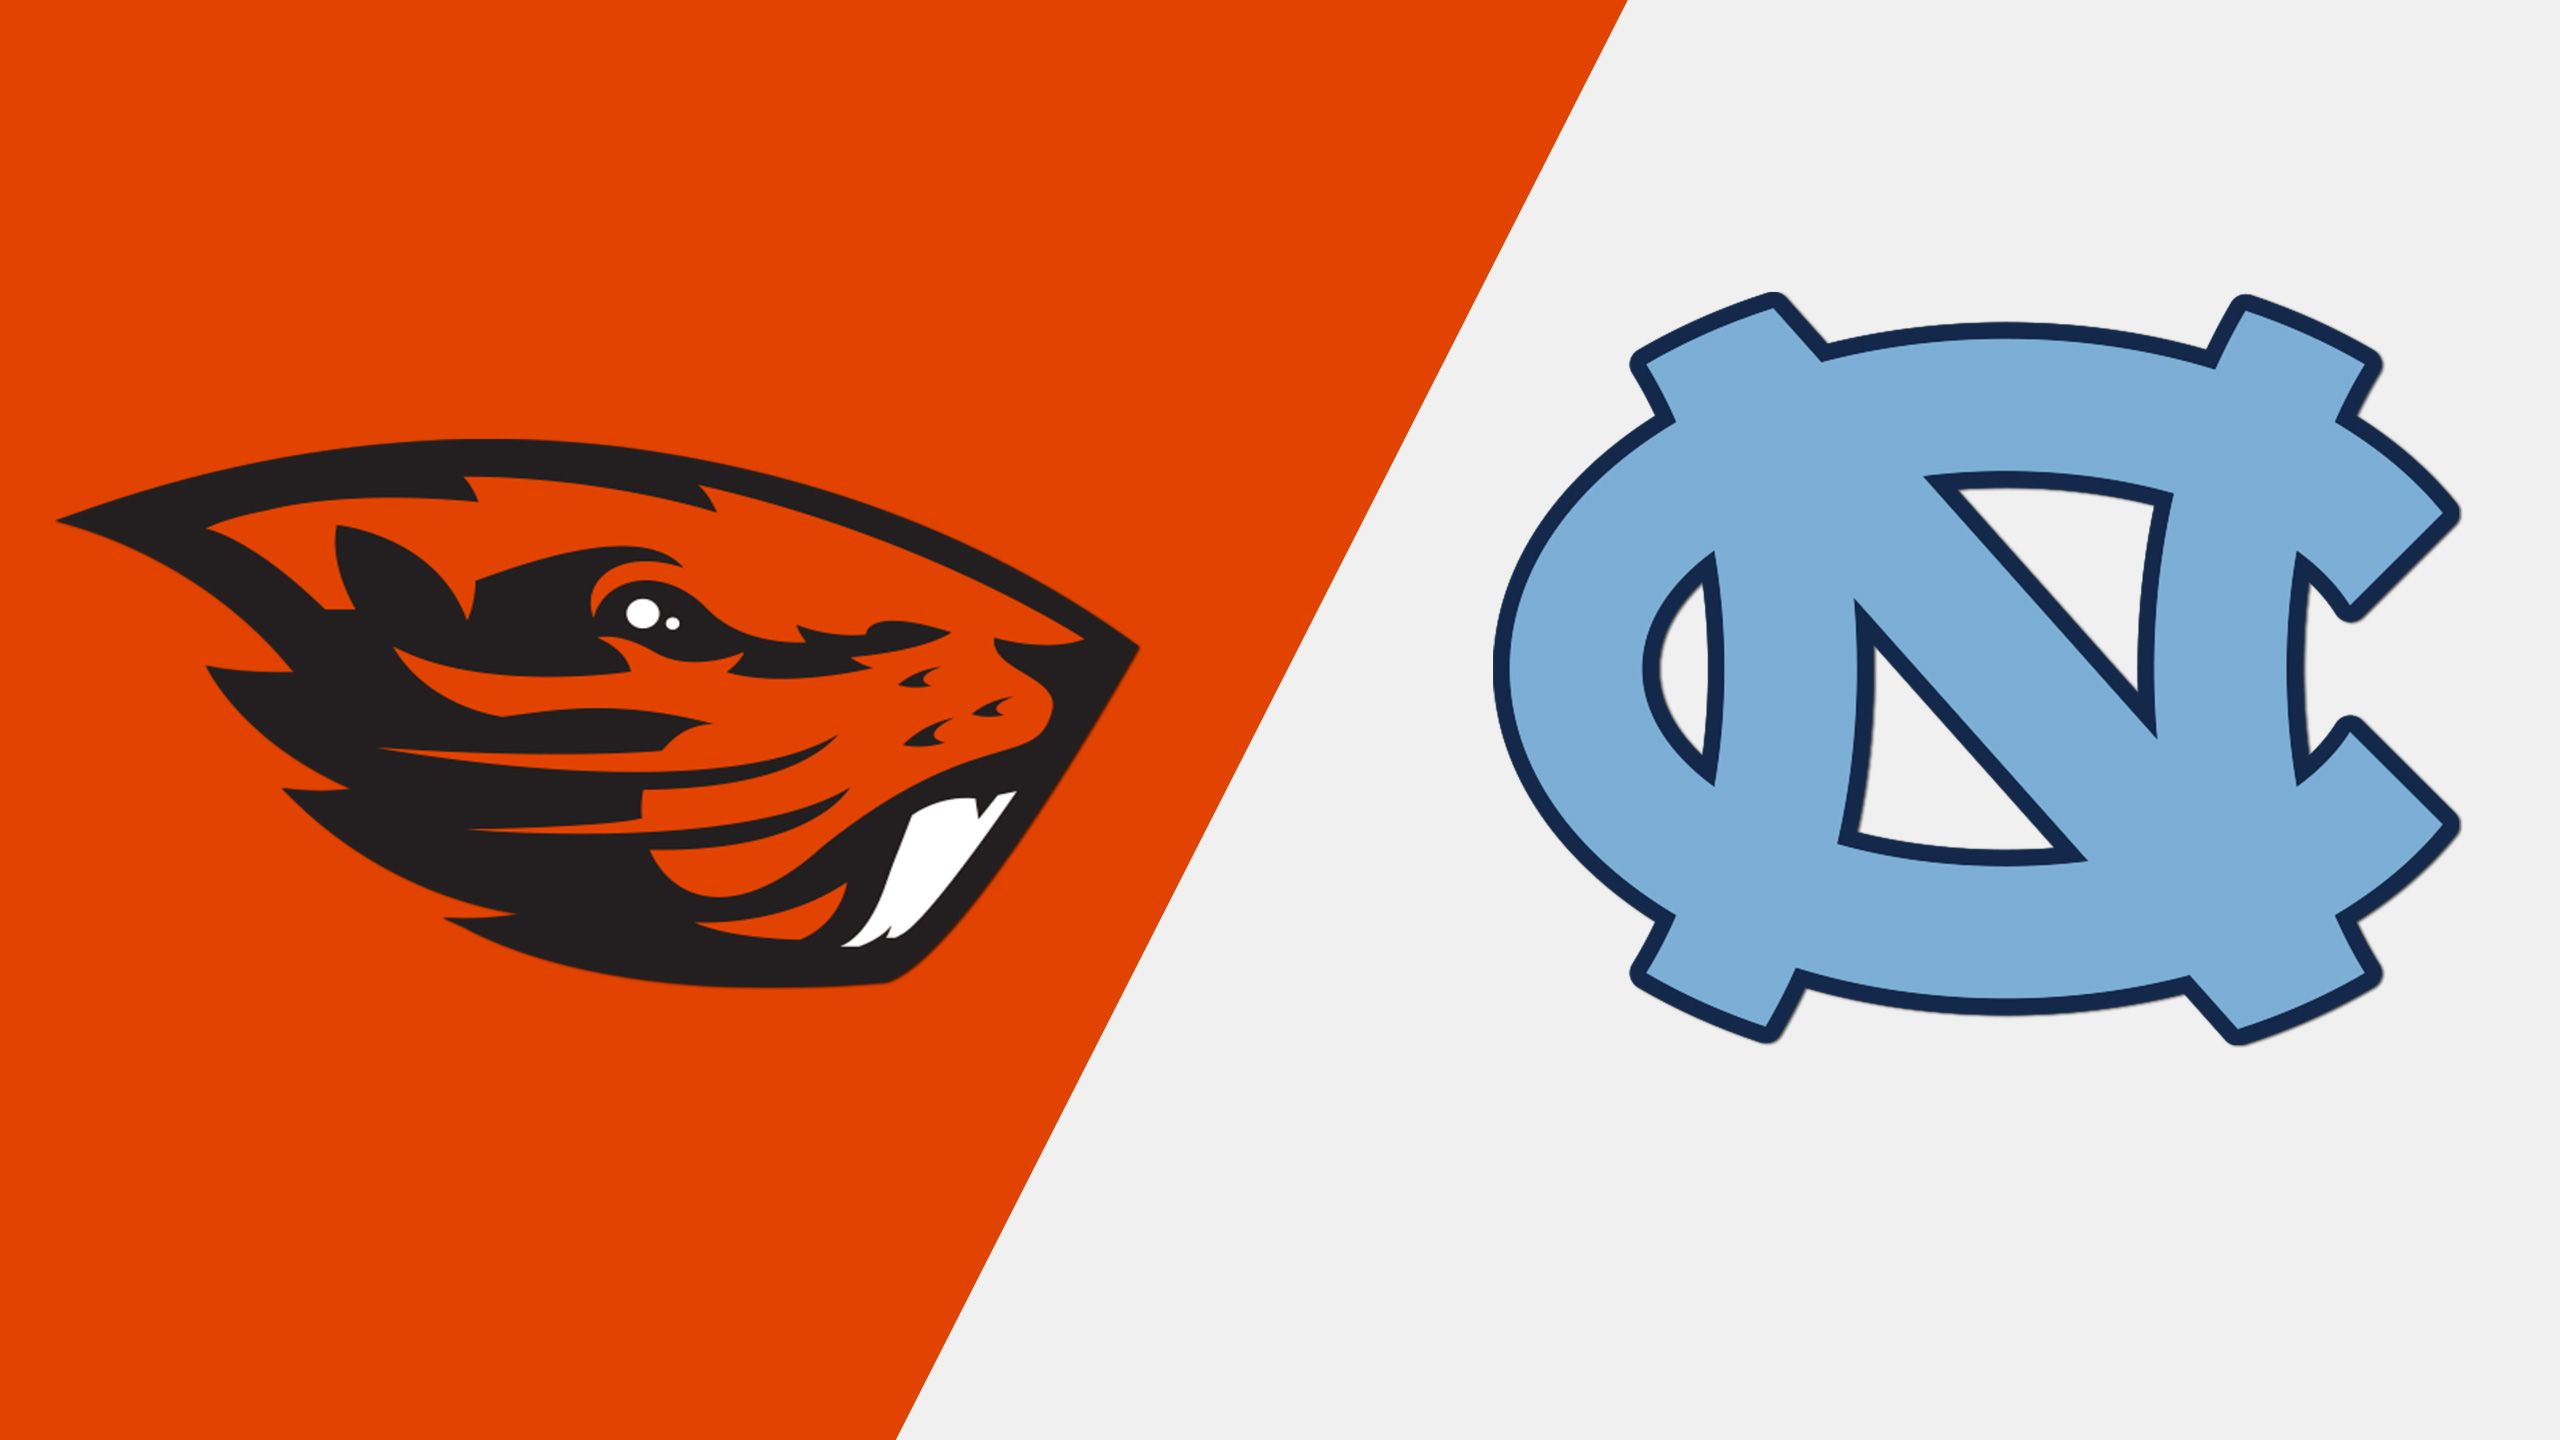 #3 Oregon State vs. #6 North Carolina (Game 9) (College World Series)